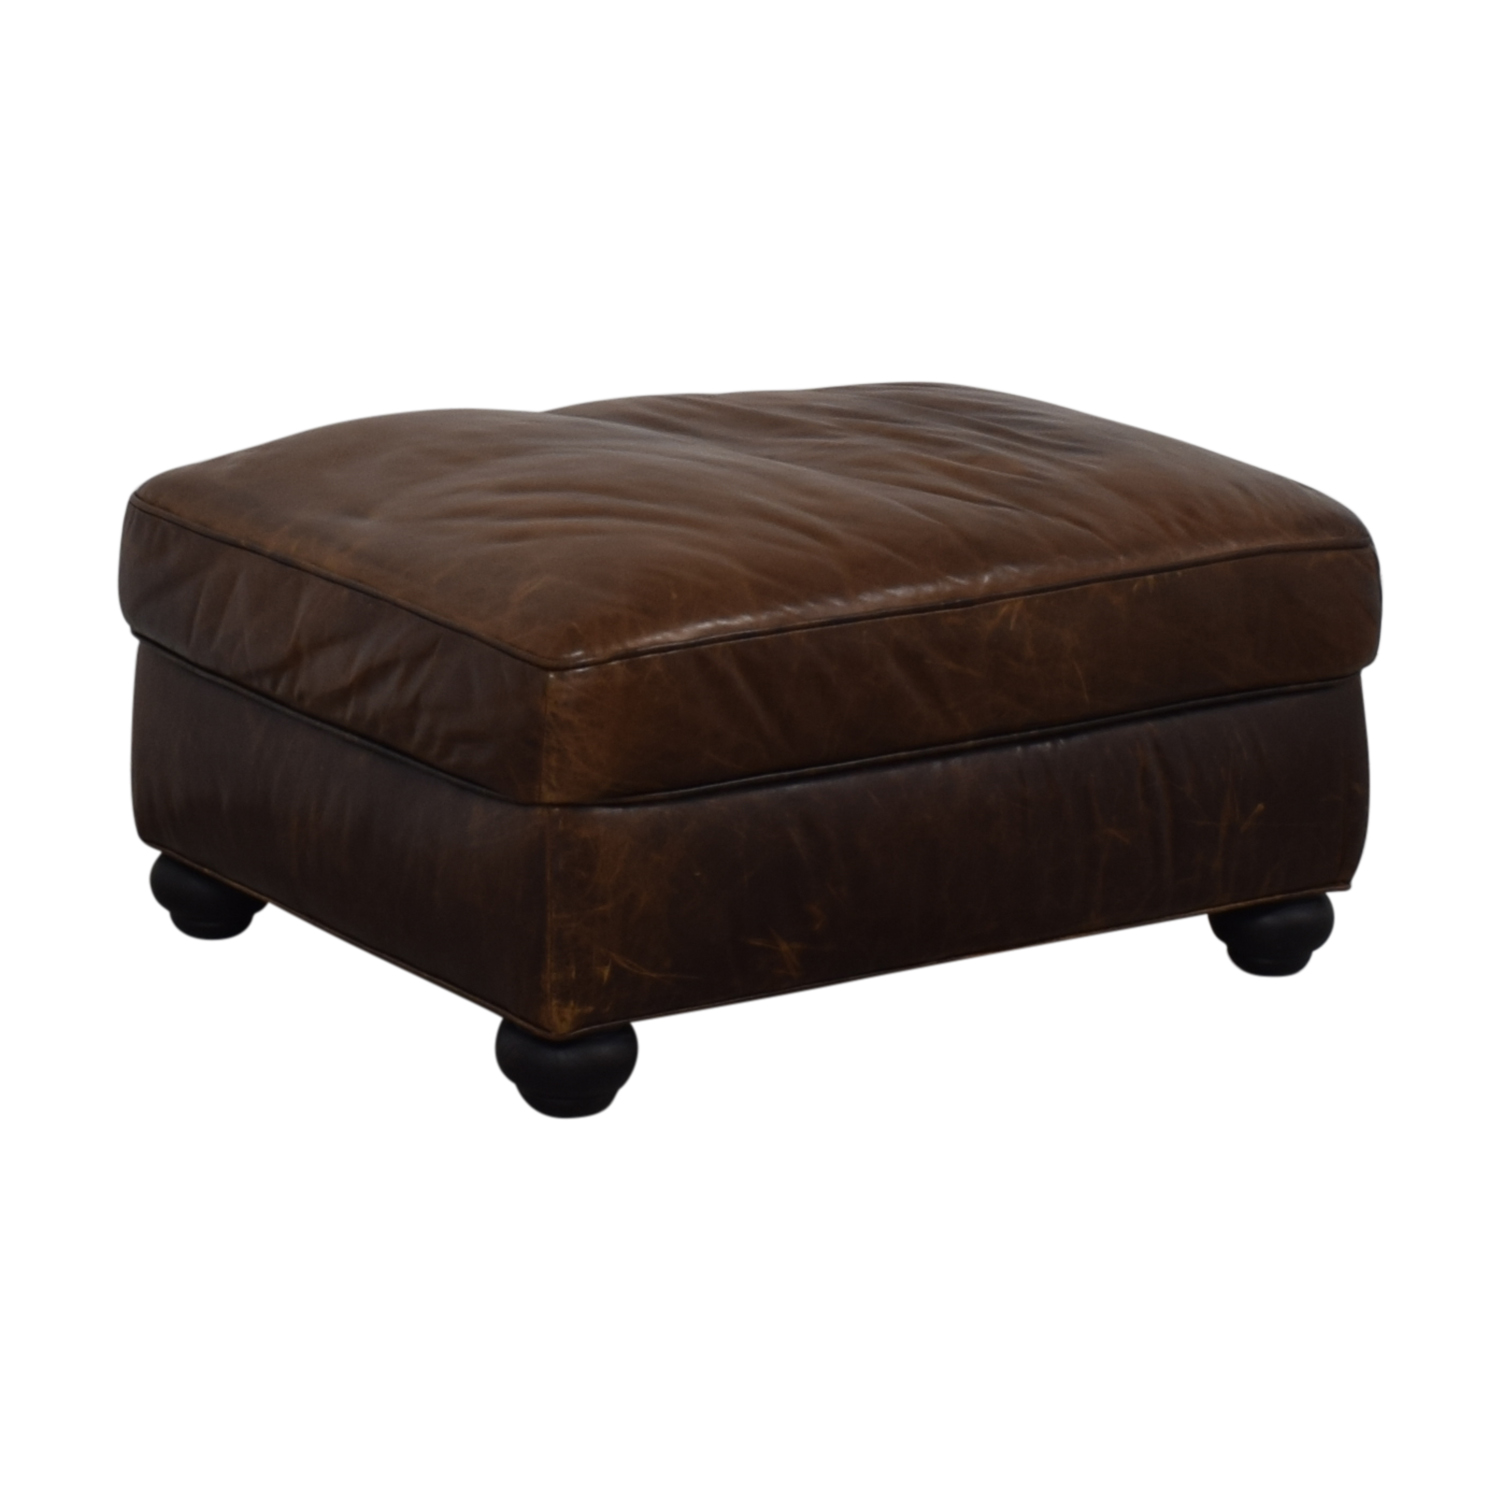 Restoration Hardware Lancaster Leather Ottoman Restoration Hardware